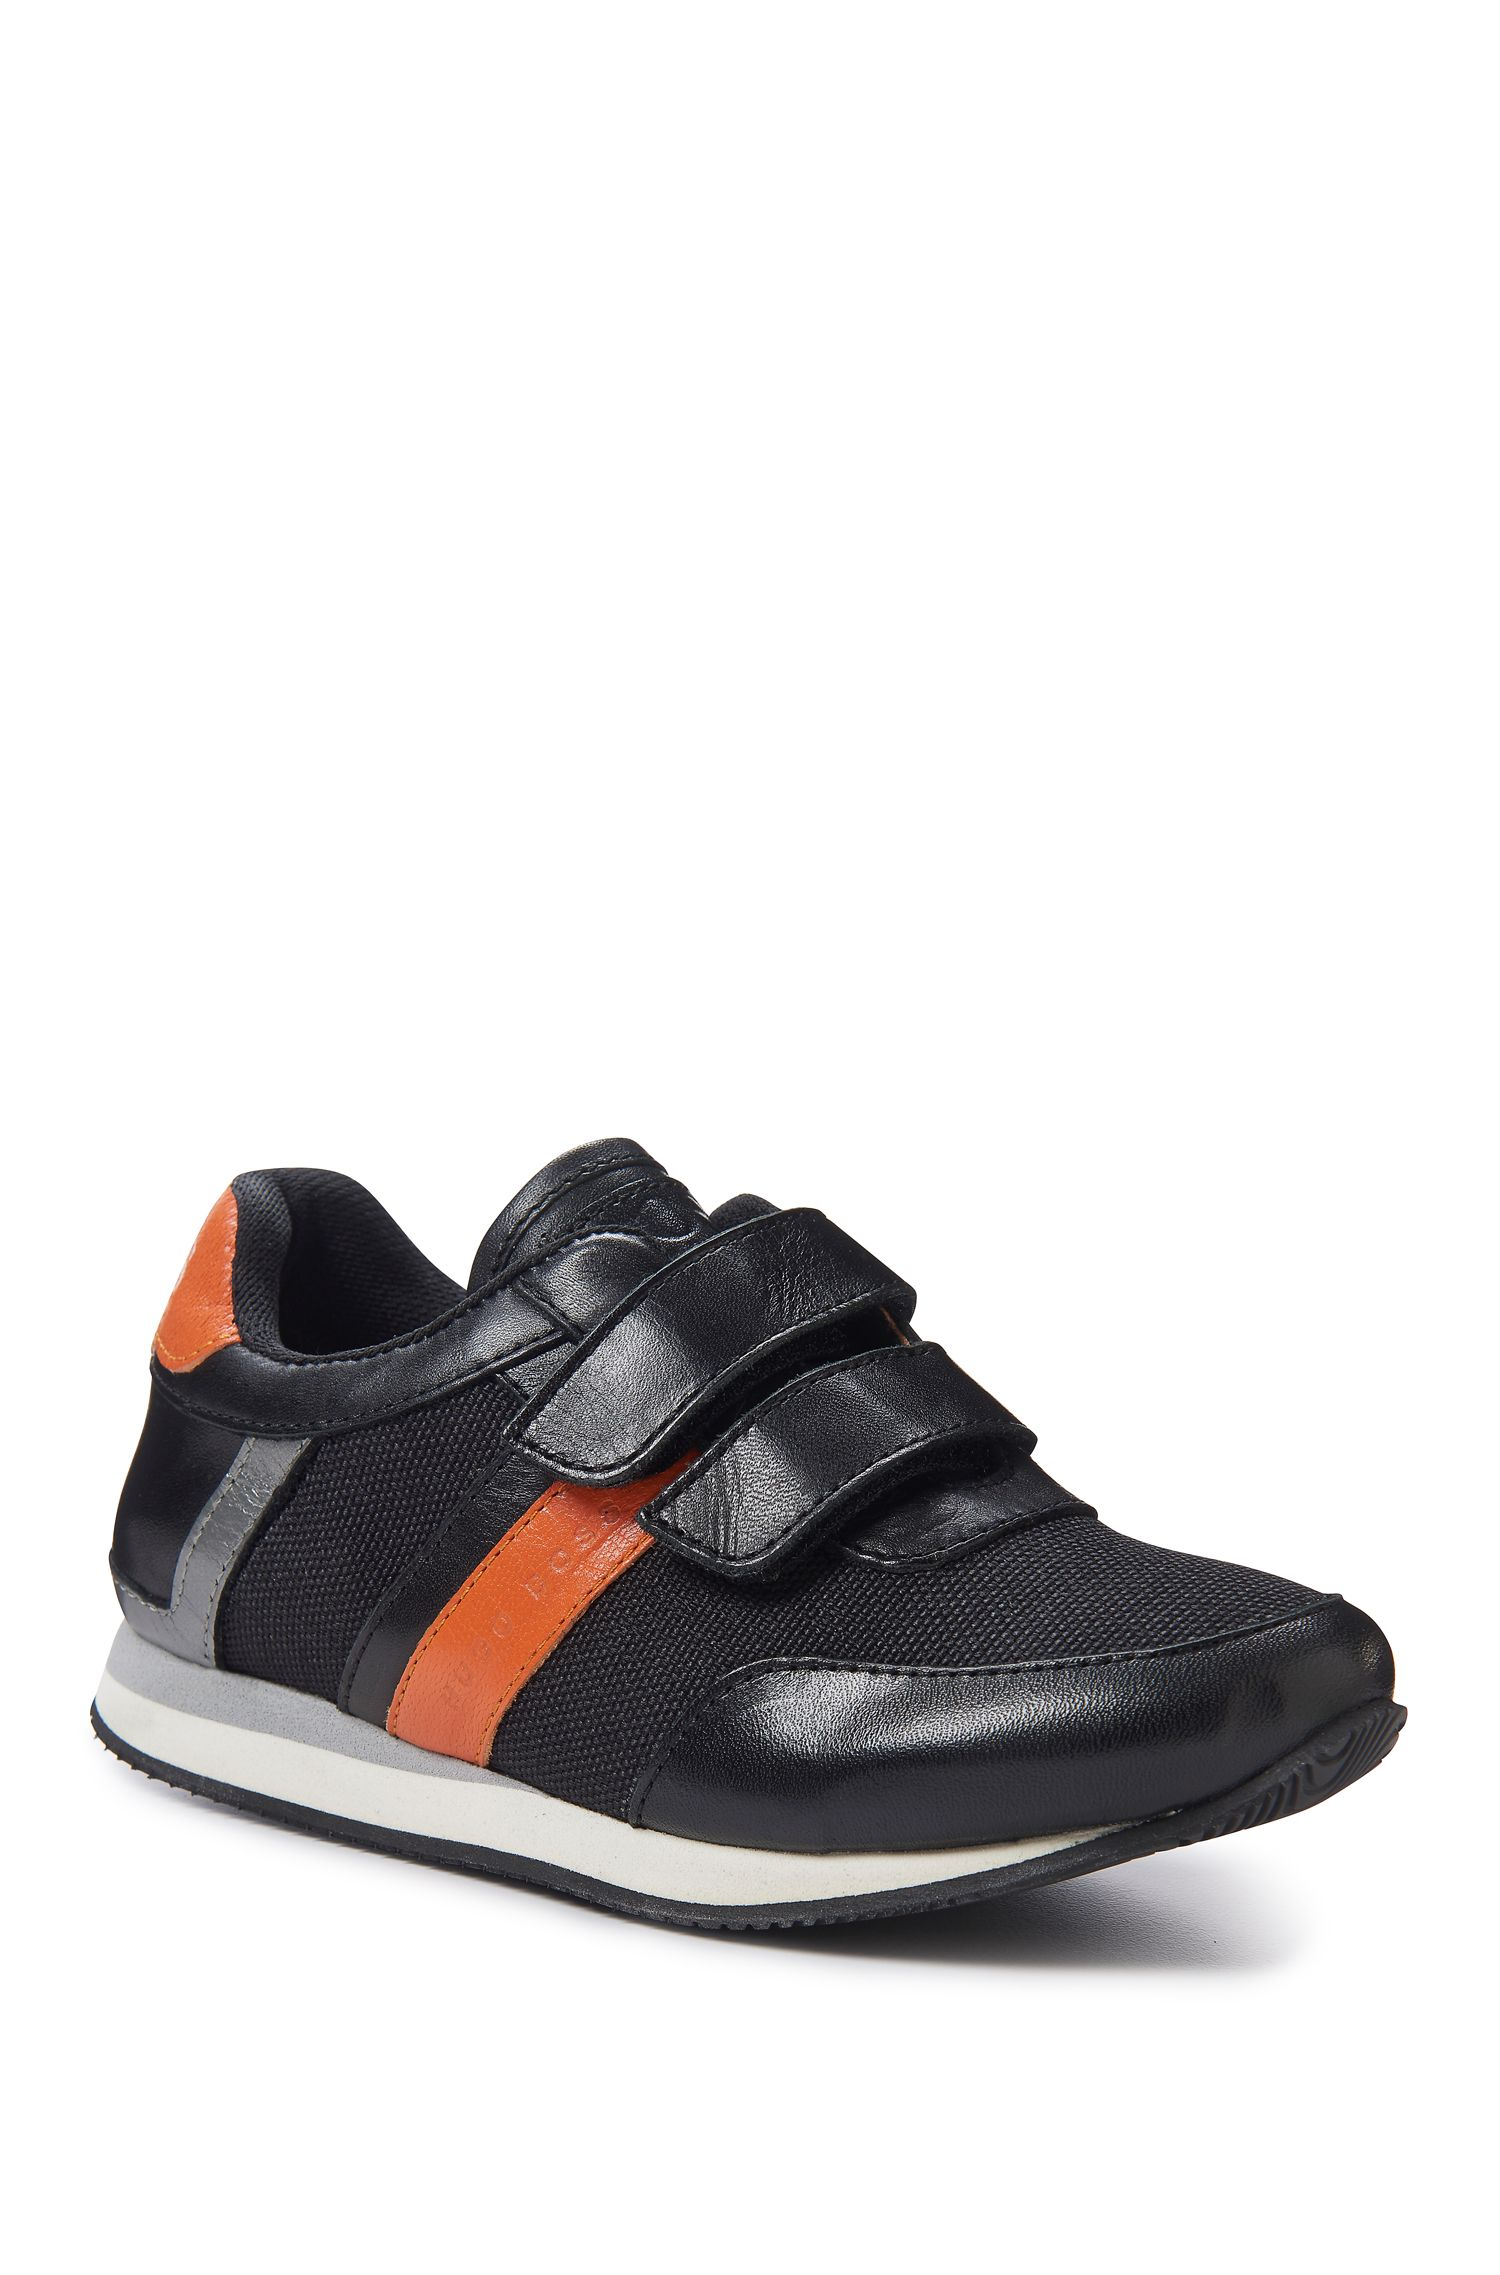 'J29120' | Boys Leather Sneaker